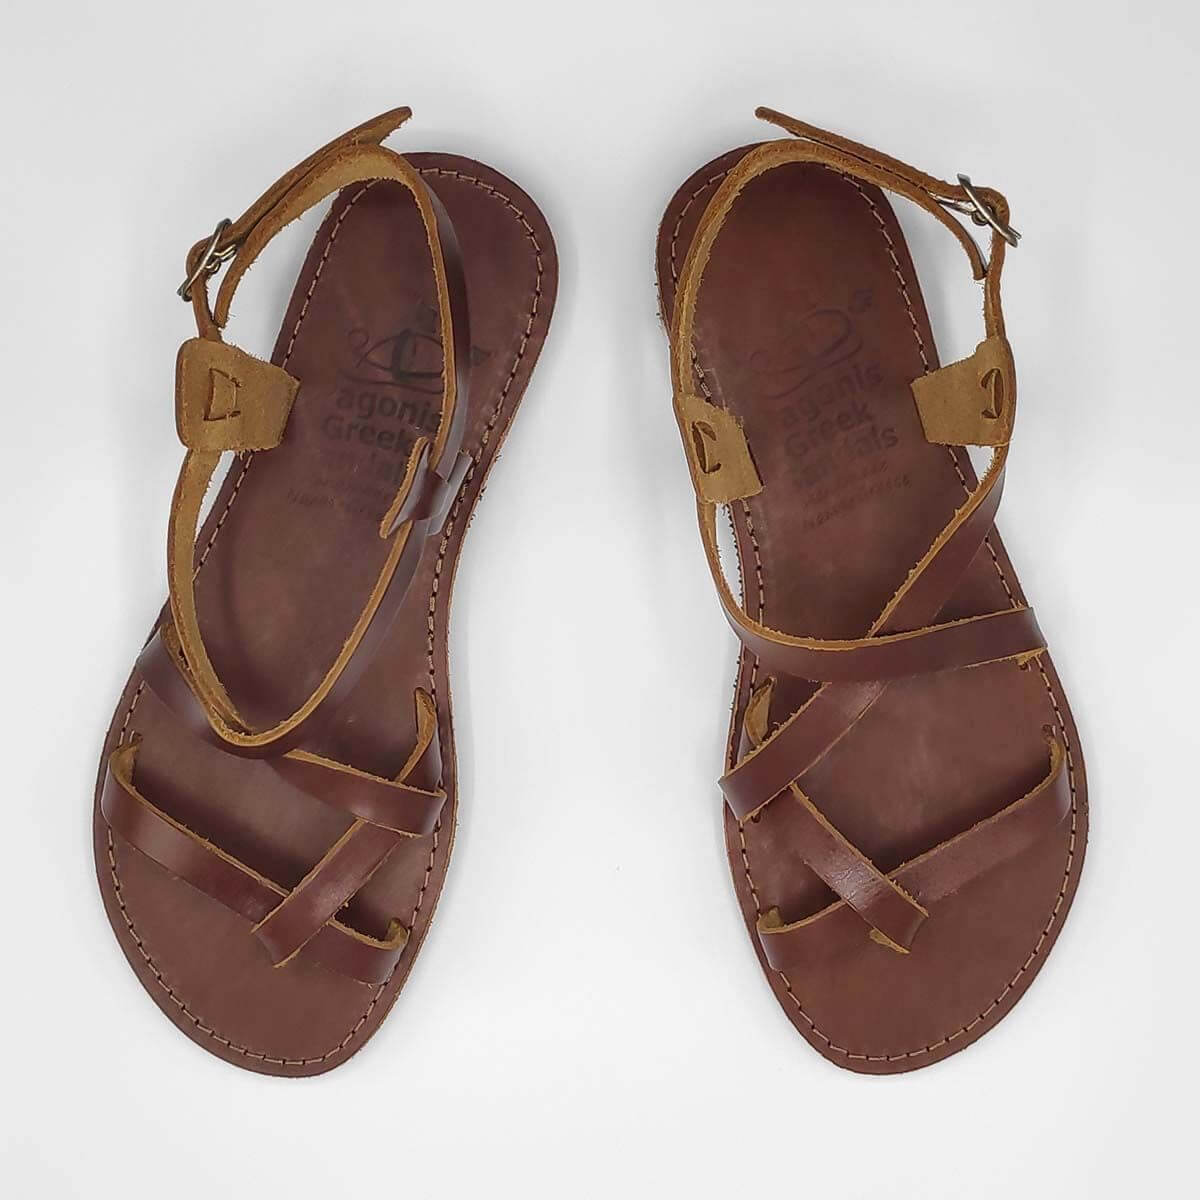 AMMOS Men leather sandals - AMMOS Sandals with Back Strap | Pagonis Greek Sandals